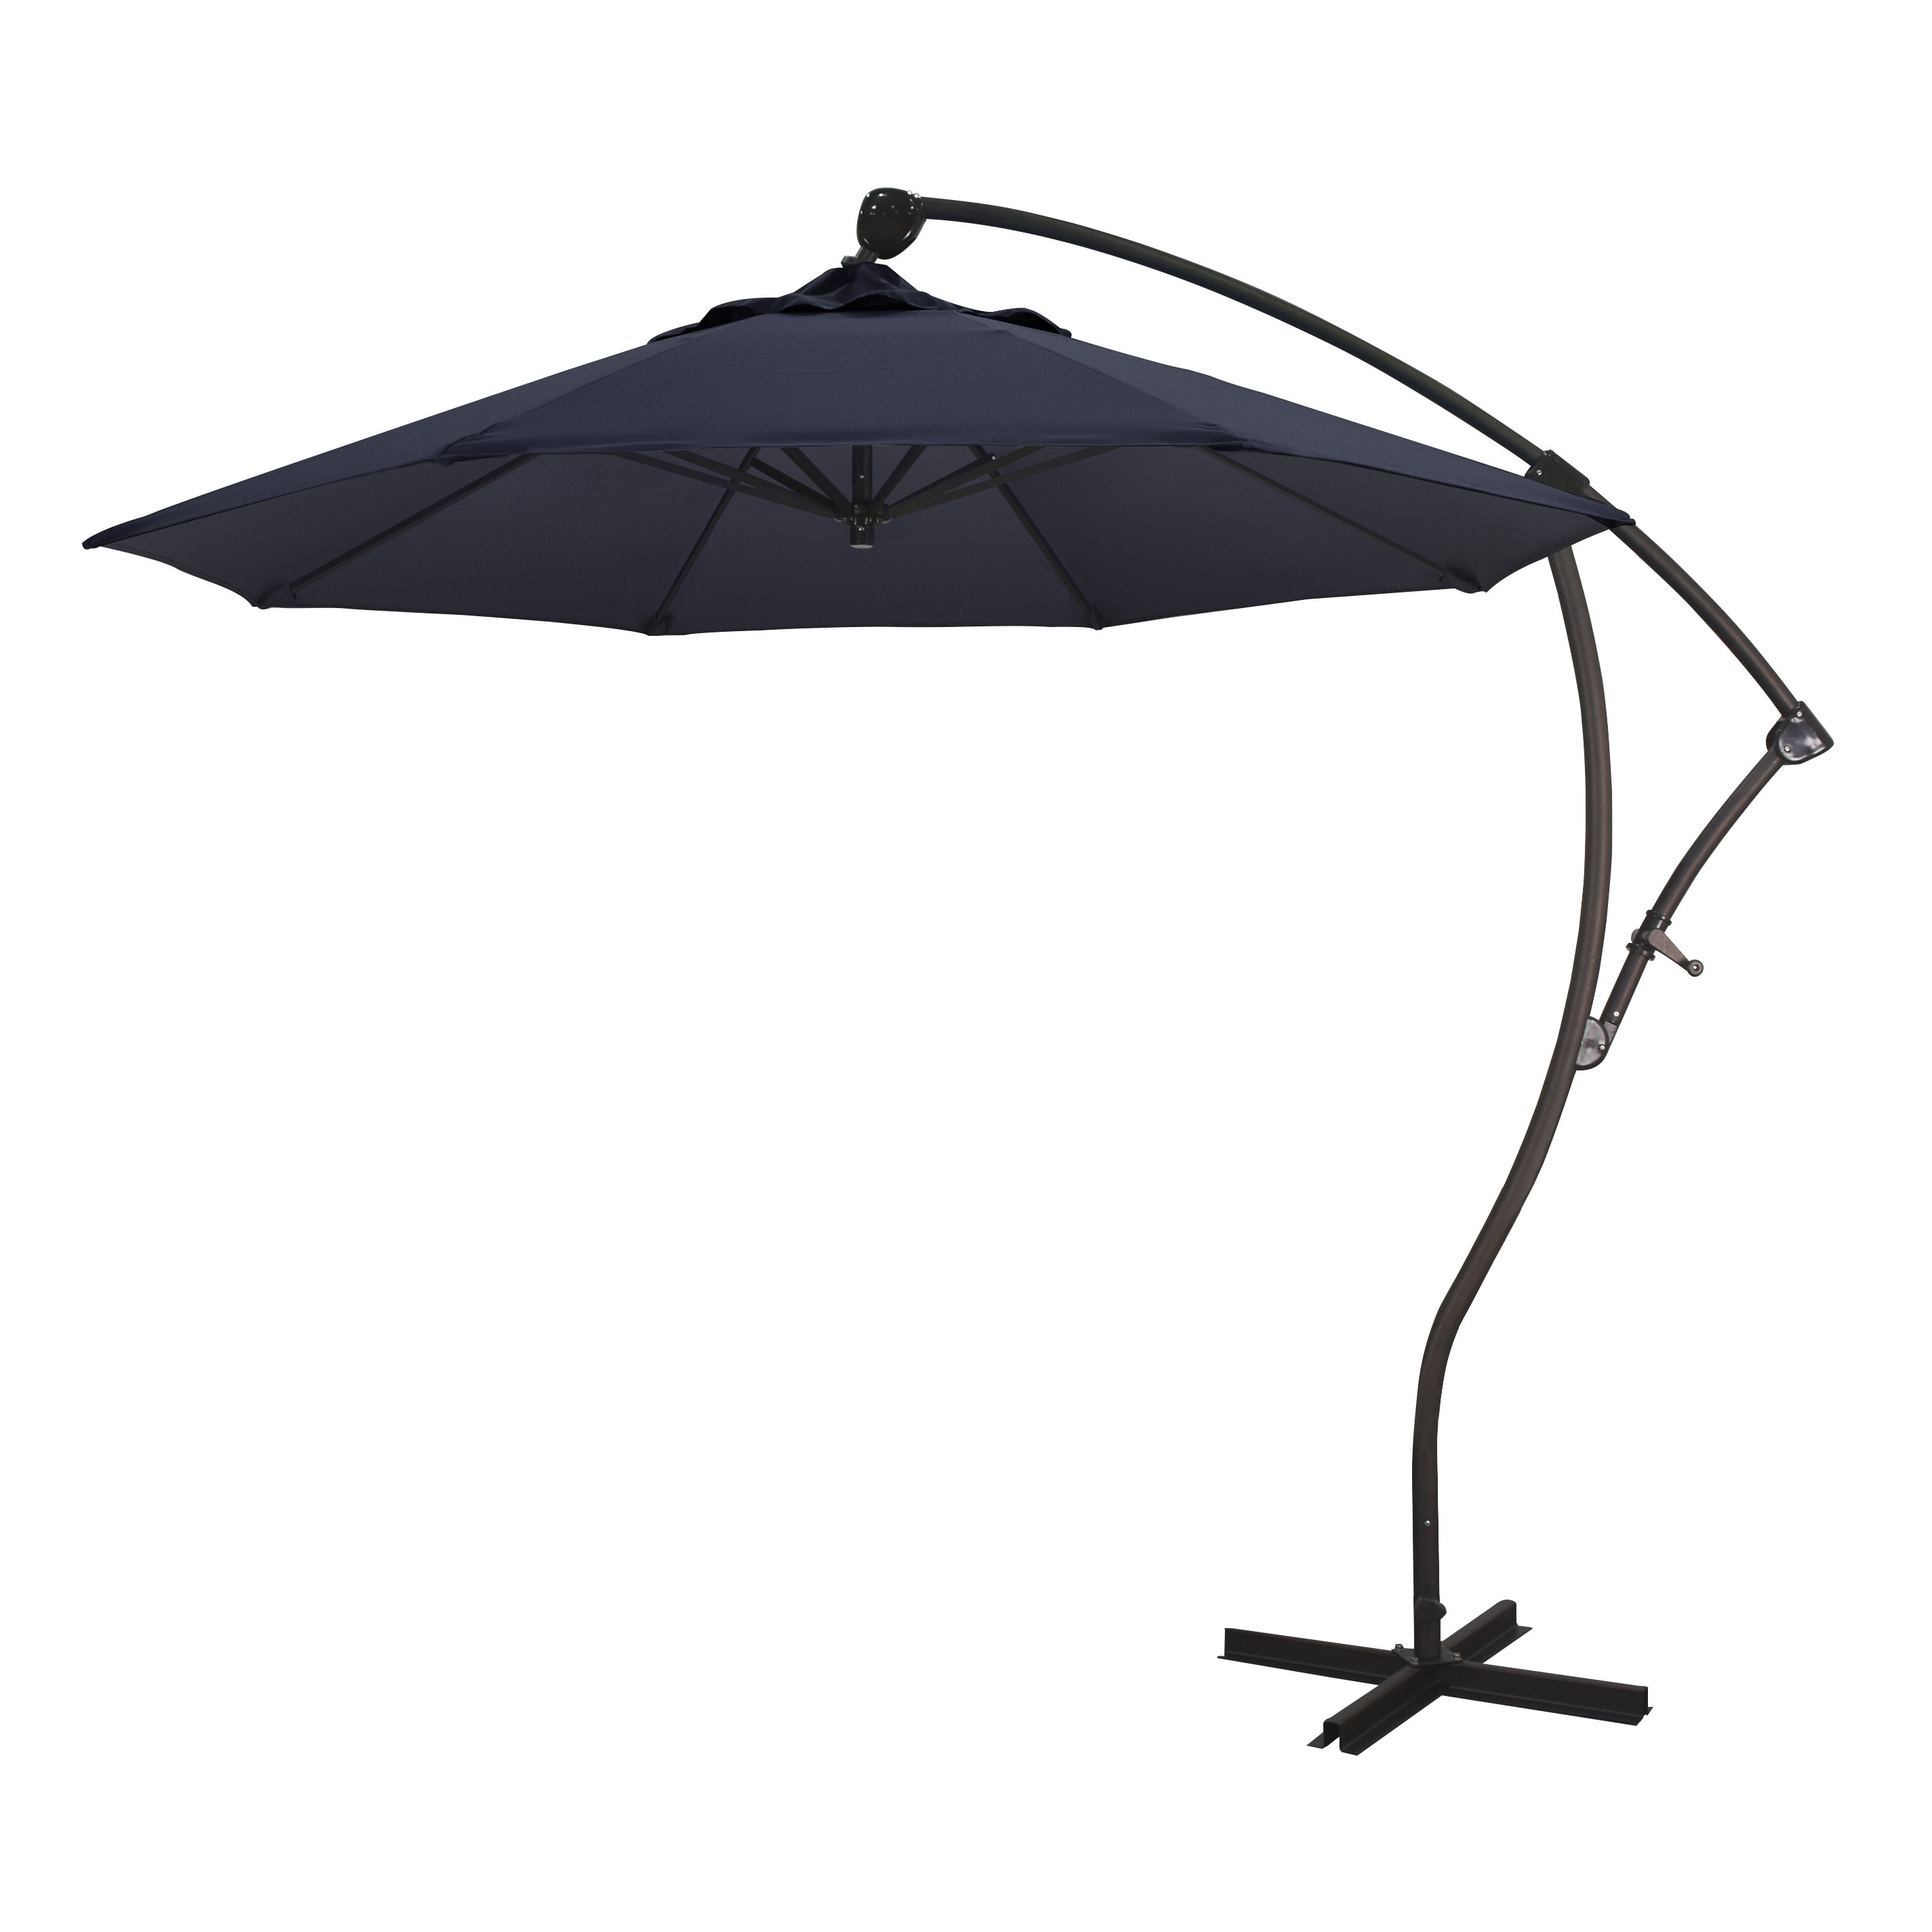 Capri 9' Cantilever Umbrella Pertaining To 2019 Ceylon Cantilever Sunbrella Umbrellas (View 8 of 20)